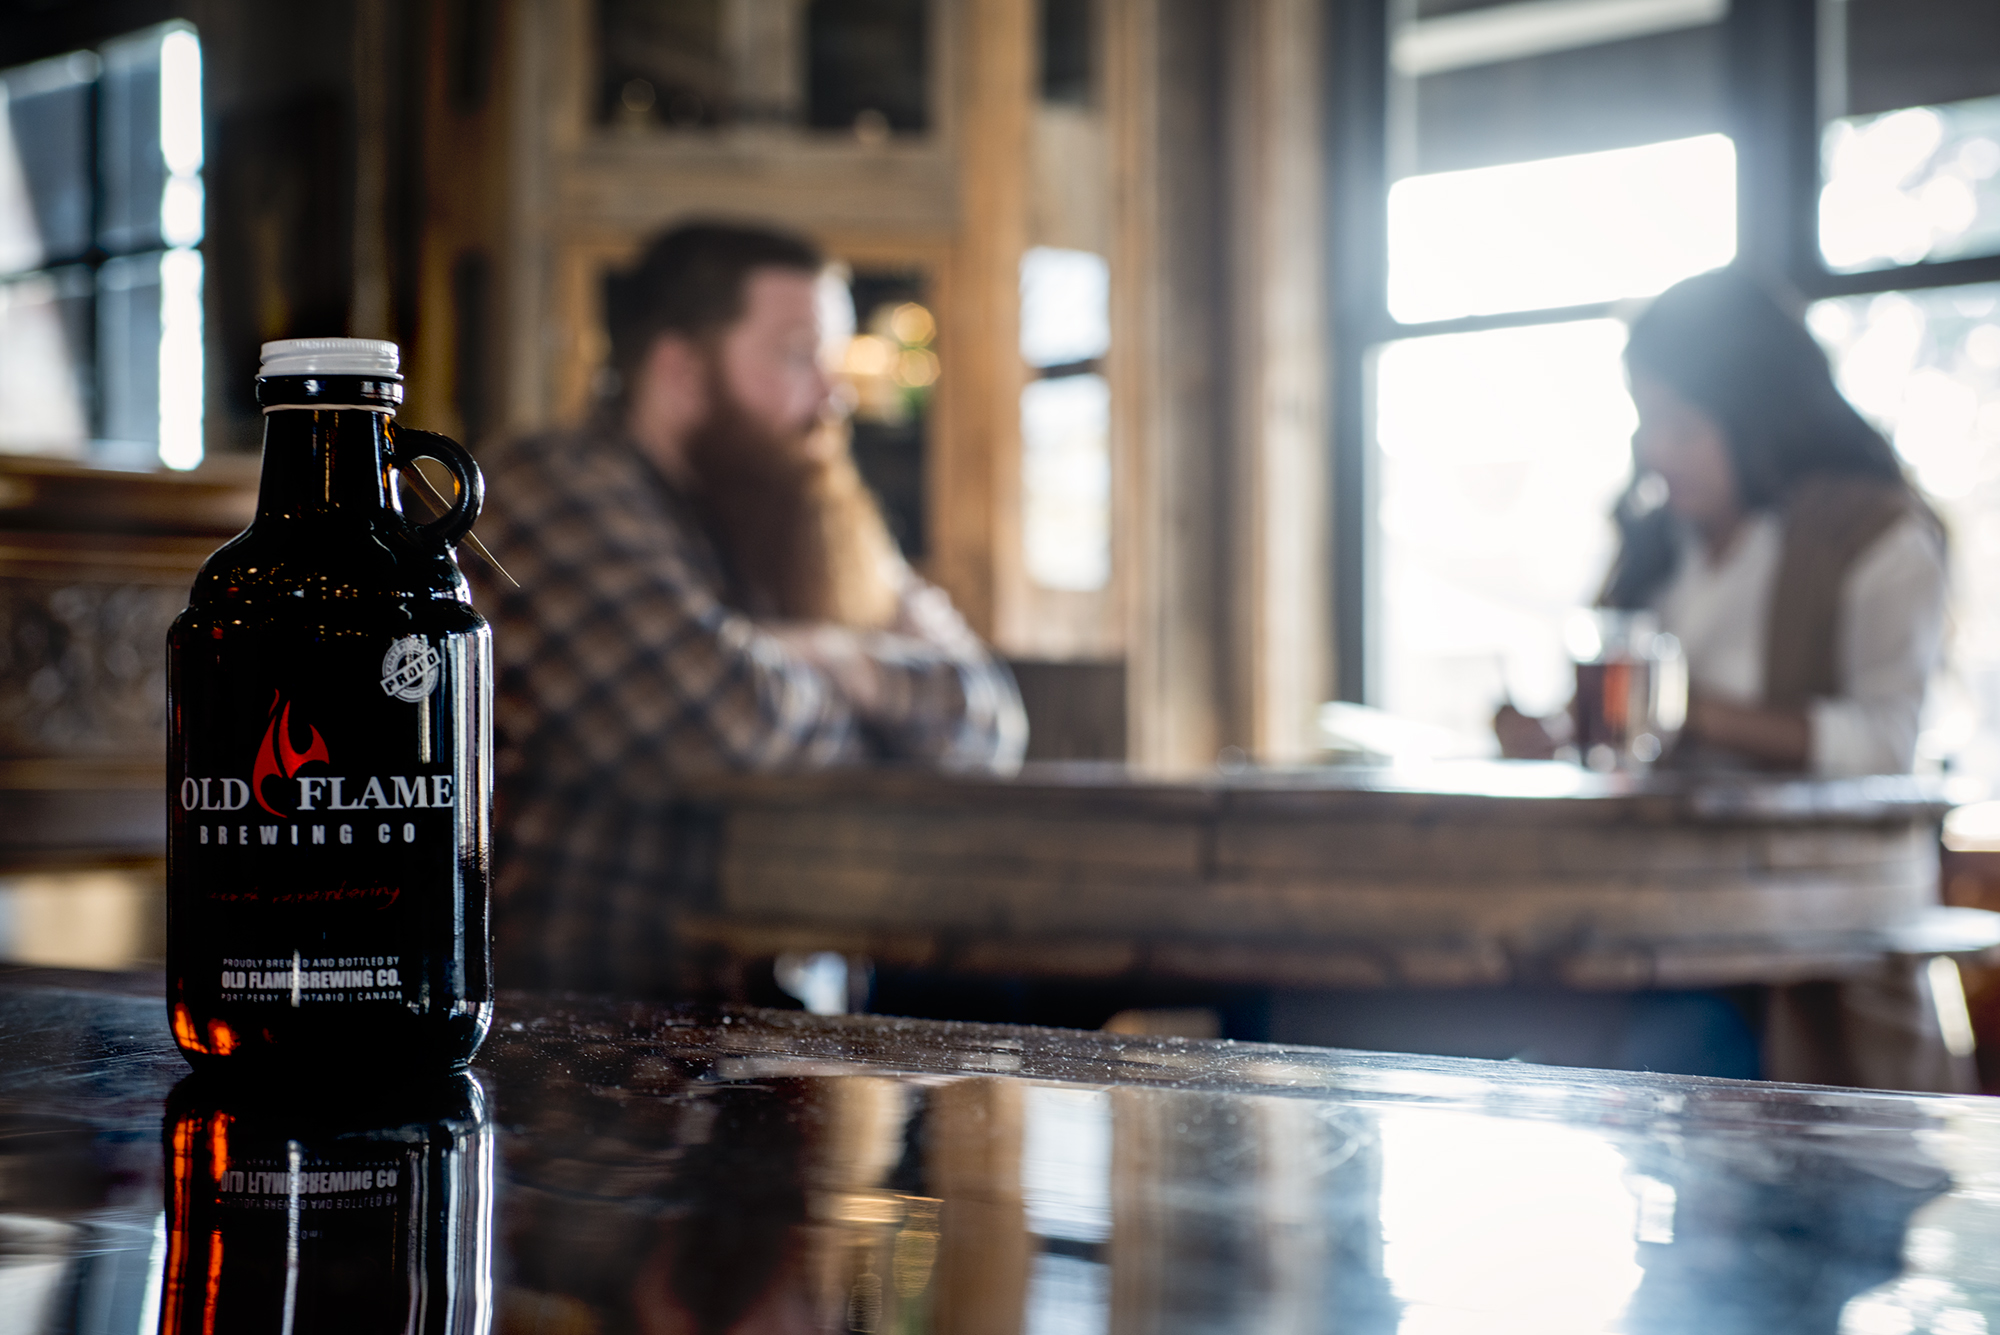 Try craft beer tasting at Old Flame Brewing Co. in Port Perry, Ontario